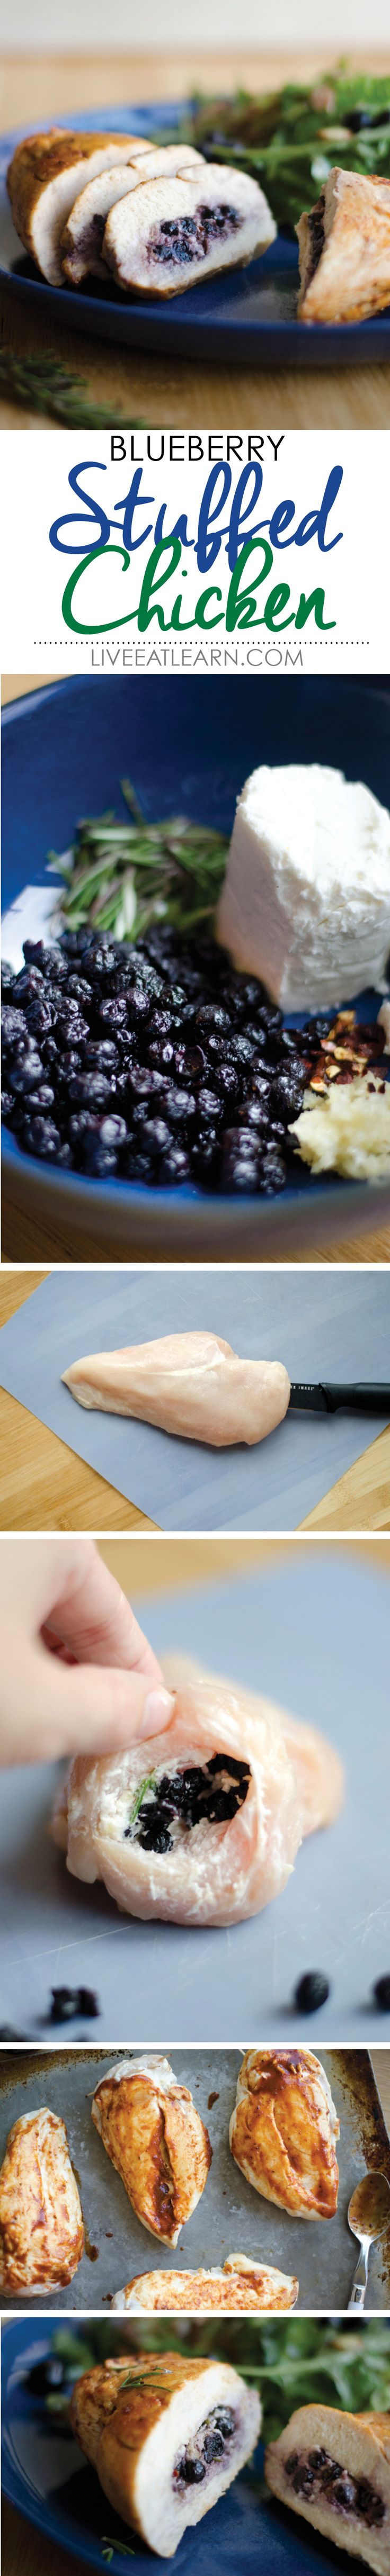 Blueberry stuffed chicken breasts with goat cheese and rosemary // Live Eat Learn